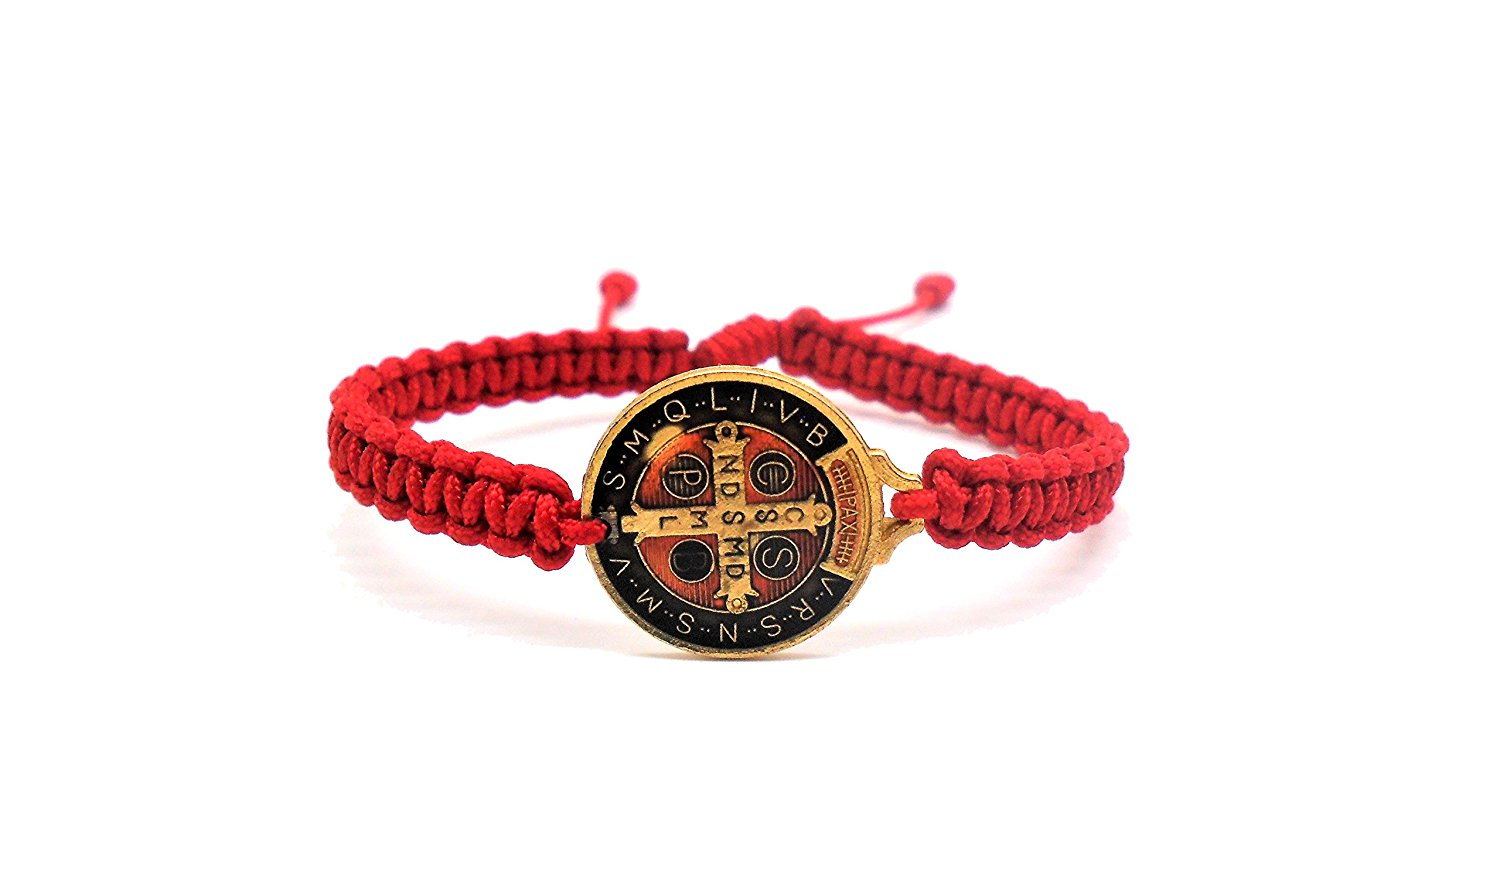 Benedict Gifts Catholic St. Benedict Bracelet, Red Blessing Bracelet, Beautiful St. Benedict Medal Both Sides, Handmade Bracelet, Catholic Bracelet, Fashion Bracelet, Blessing in Faith,Holy Bracelet